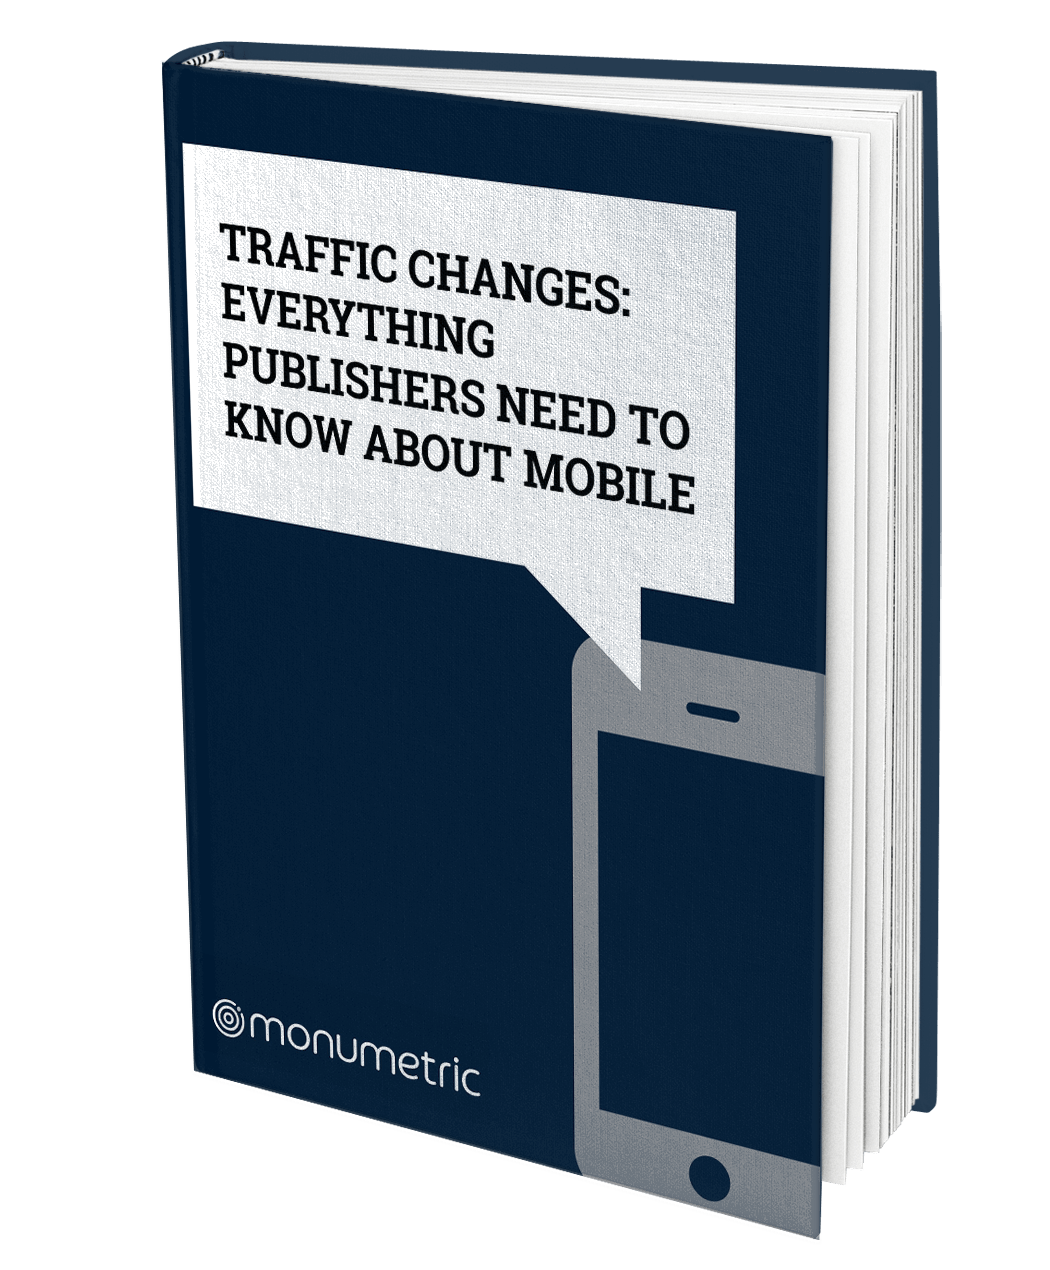 Everything Publishers Need To Know About Mobile eBOOK Mobile BookMock up